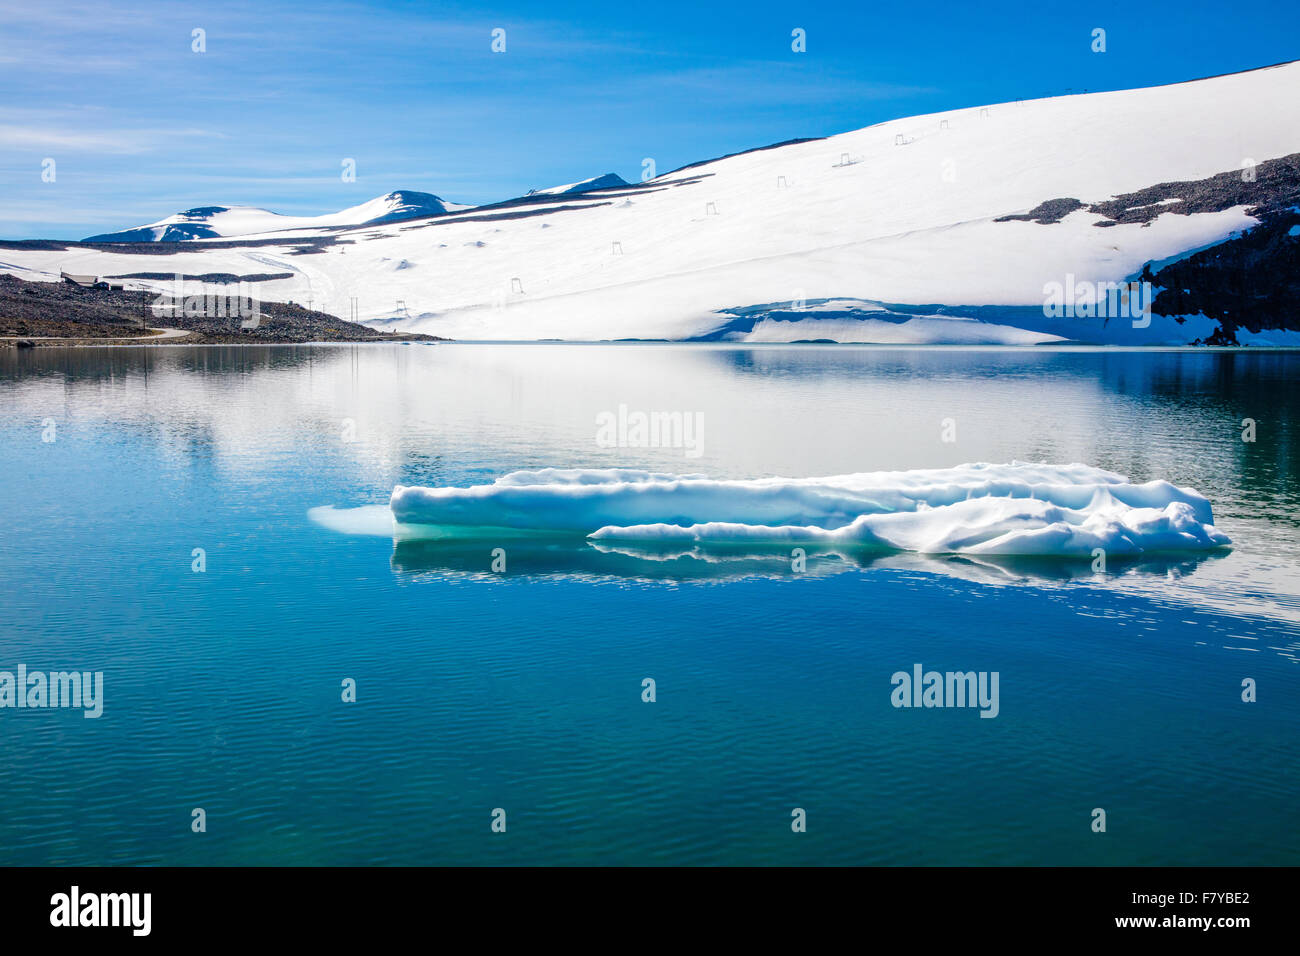 Mountain lake with small summer icegerg near Galdhopiggen the highest mountain in Norway - Stock Image